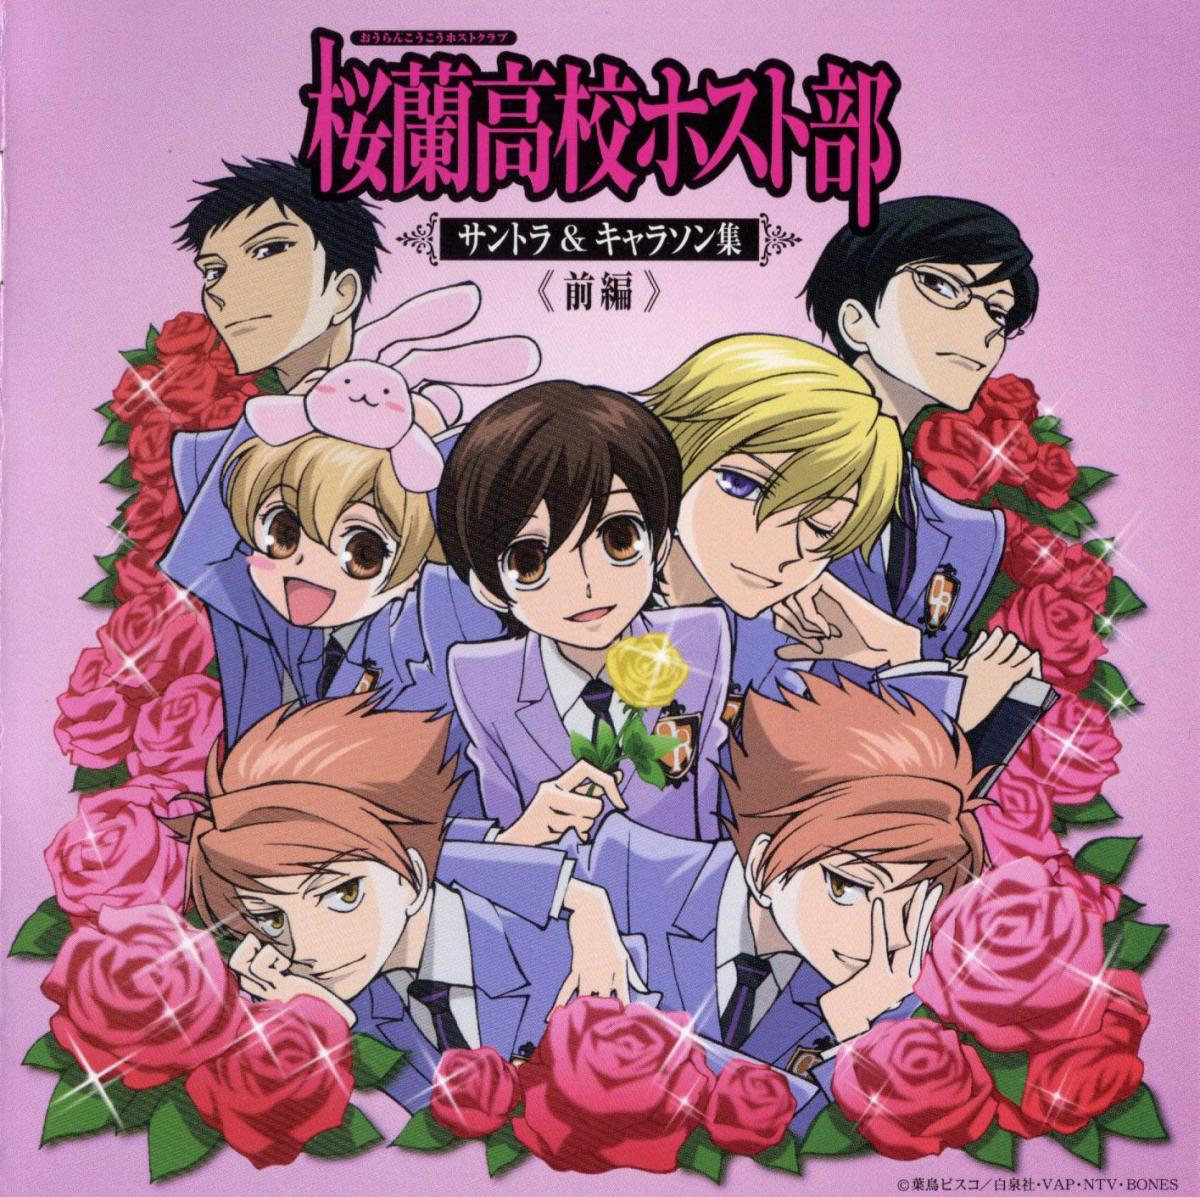 Ouran High School Host Club Anime Opening Ending Theme Songs English Japanese Versions With Lyrics Hubpages